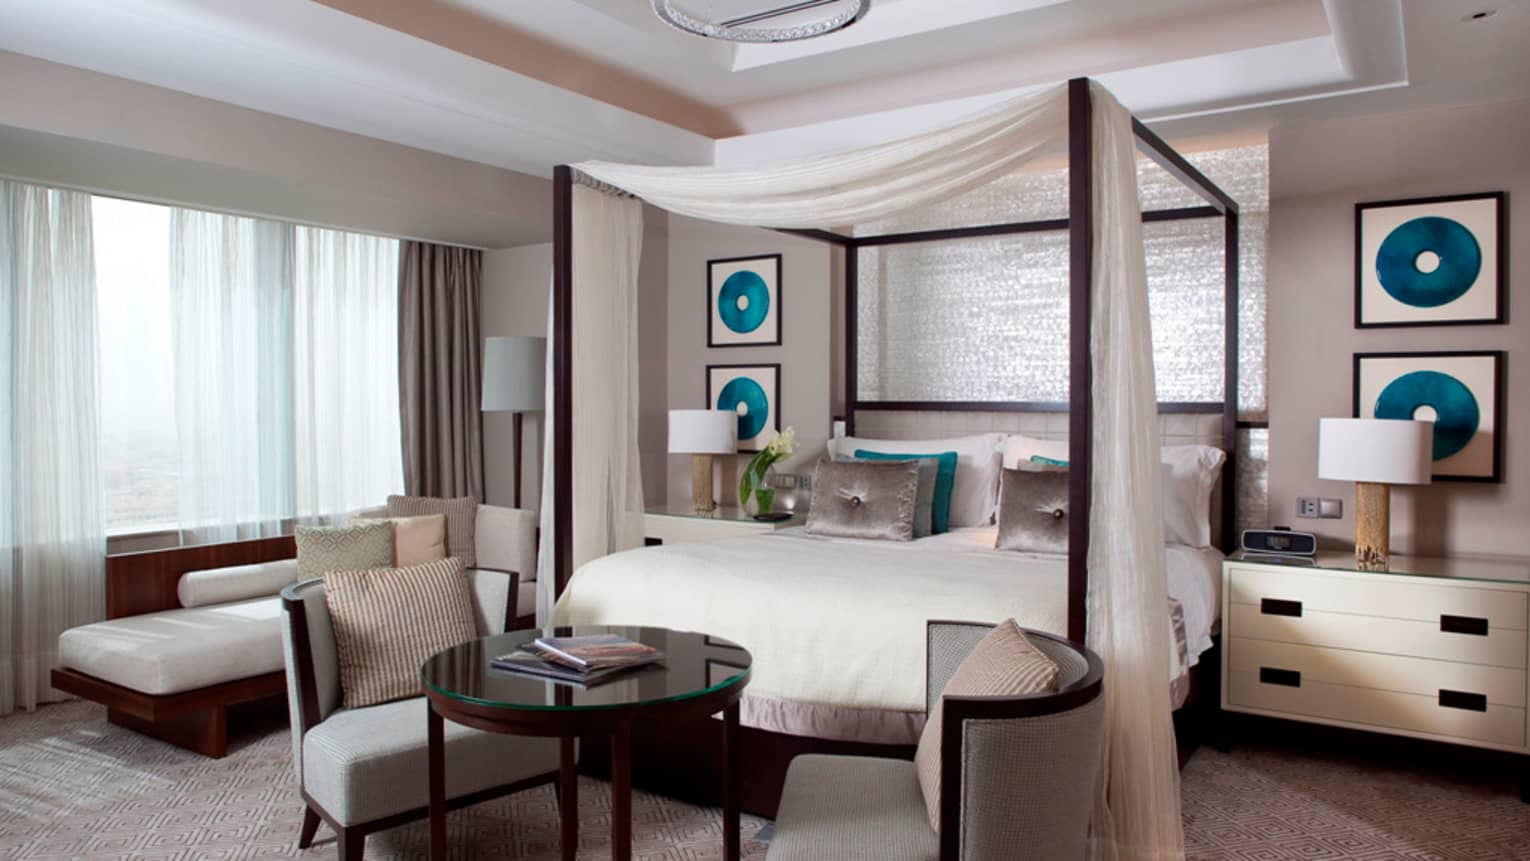 Royal Suite with canopy bed draped with white curtains, round table and chairs, white chaise